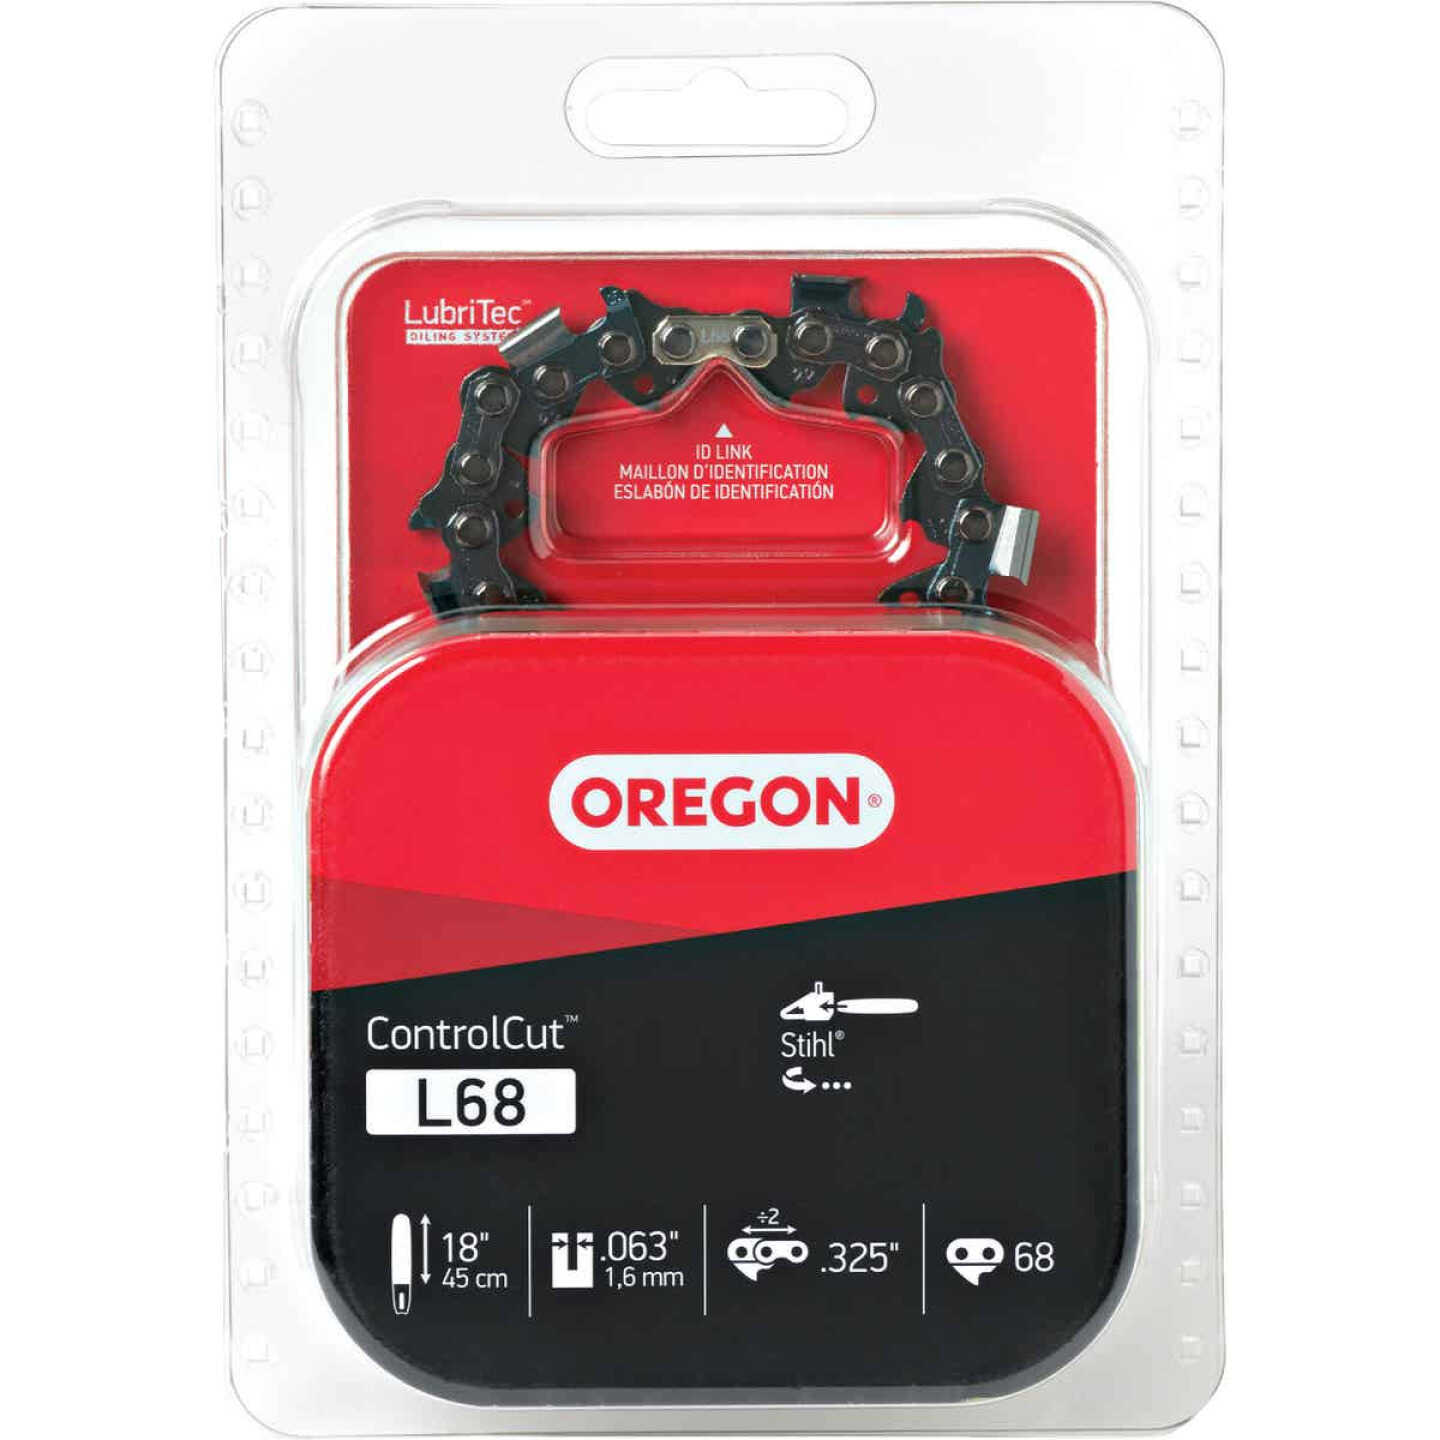 Oregon ControlCut L68 18 In. 0.325 In. 68 Link Saw Chain Image 1